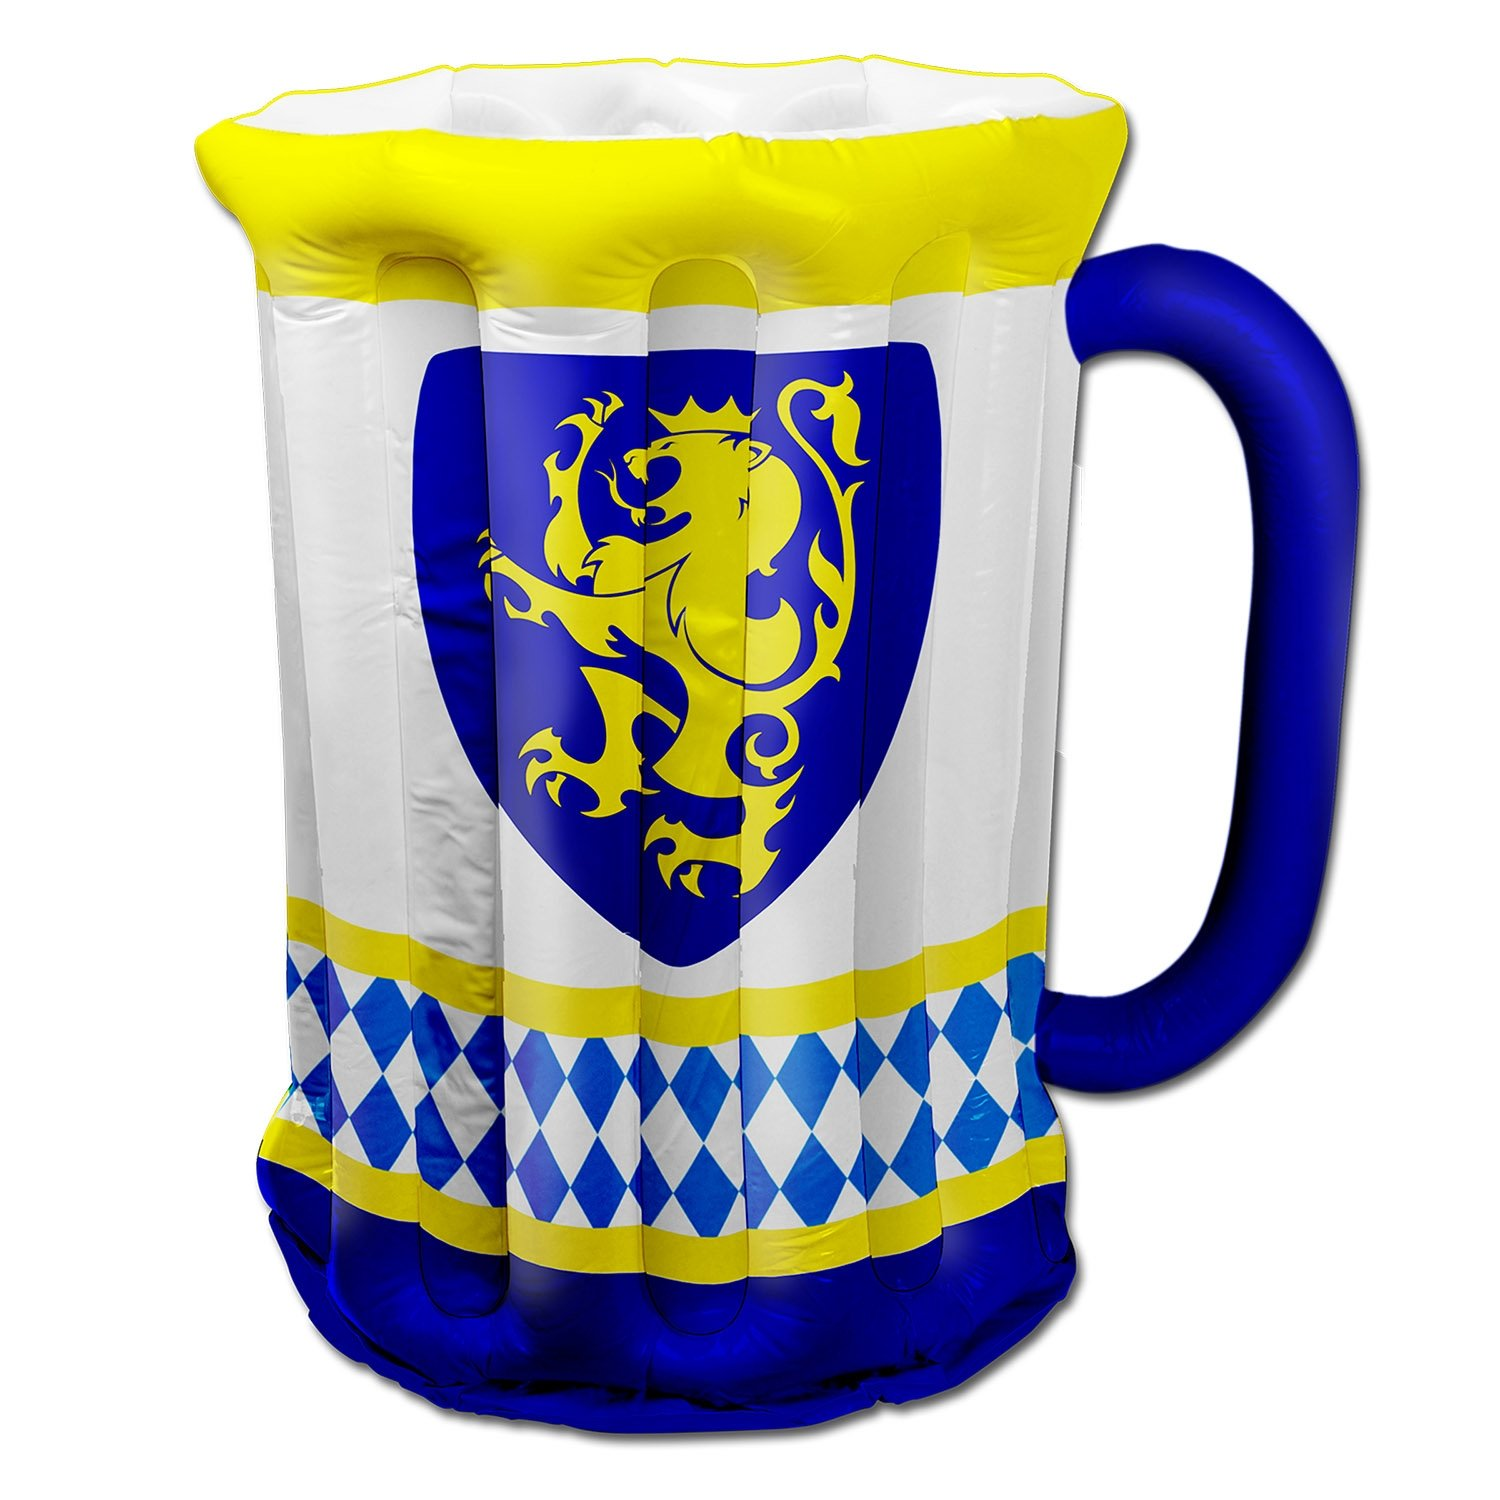 Beistle 54079 Inflatable Beer Stein Cooler, 18-Inch Width X 27-Inch Height, Yellow/White/Blue The Beistle Company